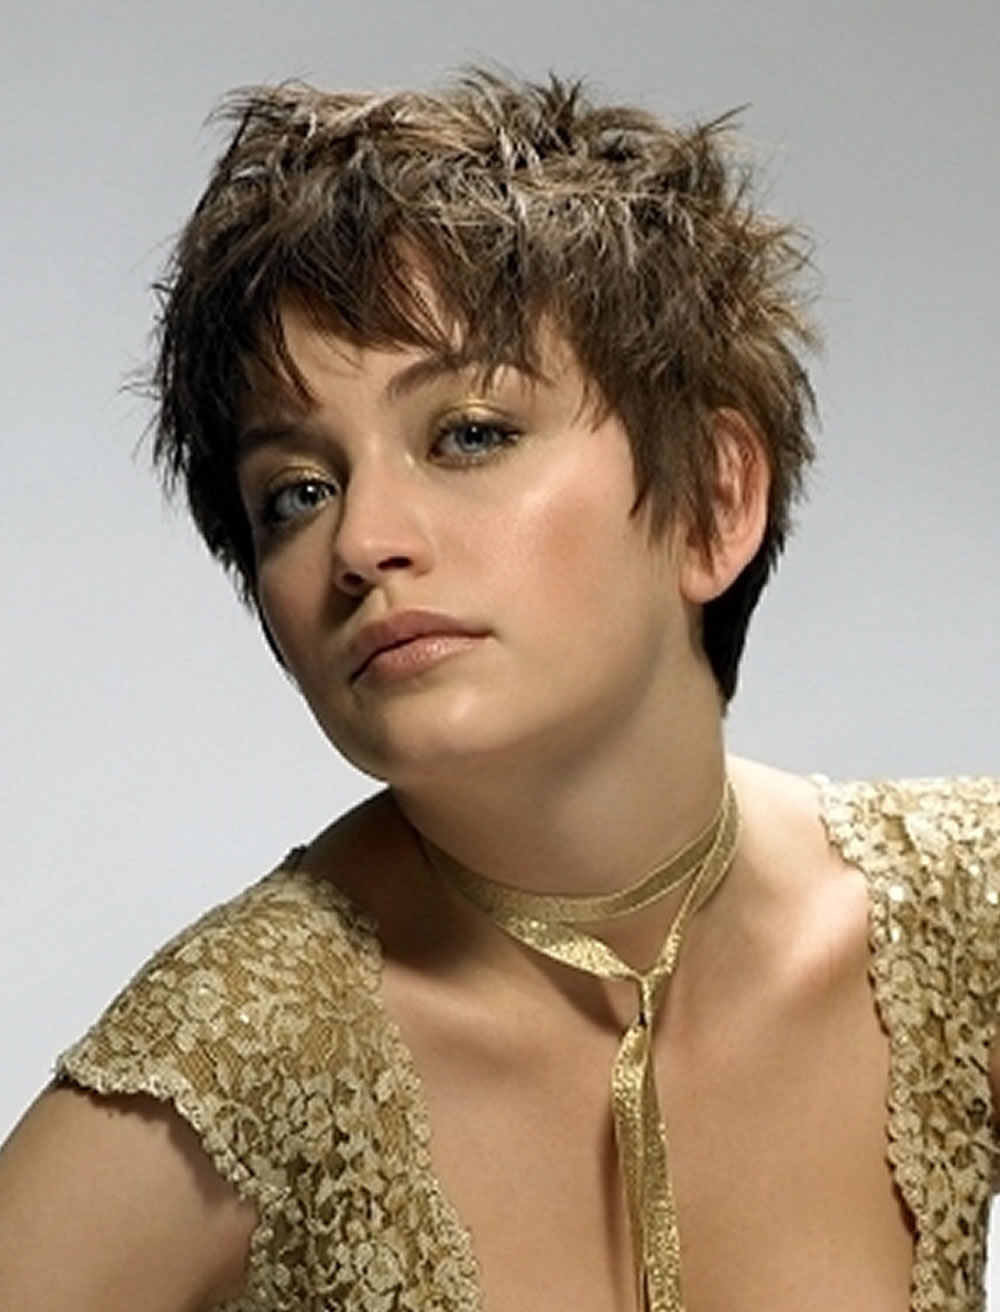 Cute Pixie Shaggy Short Hair Hairstyles For Round Faces – Hairstyles Inside Cute Shaggy Short Haircuts (View 14 of 25)